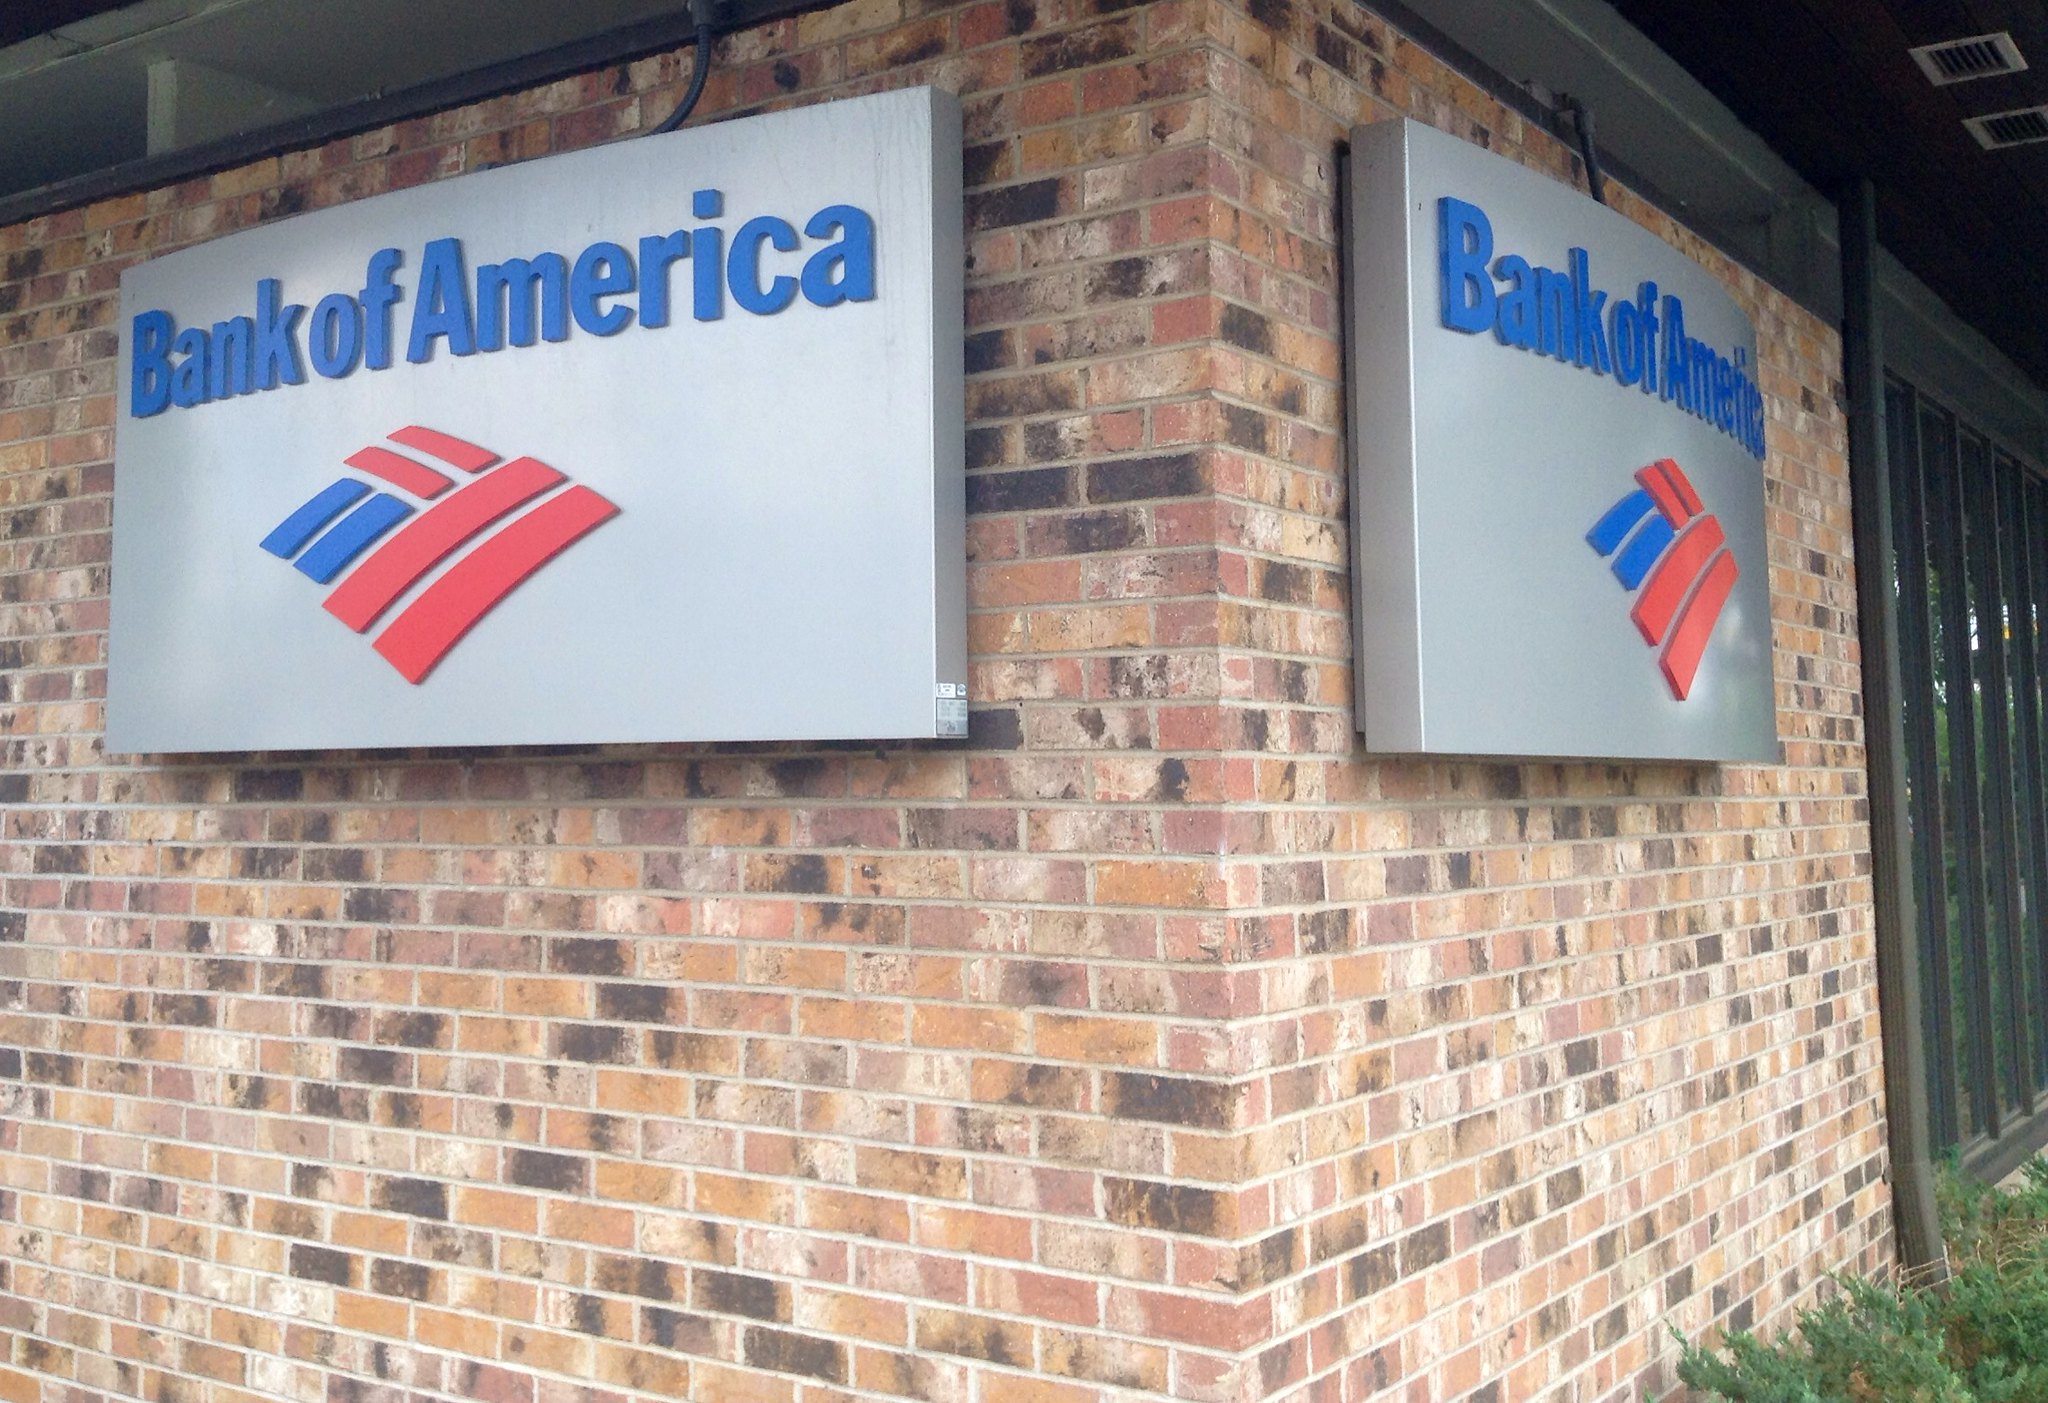 Bank of America branch location